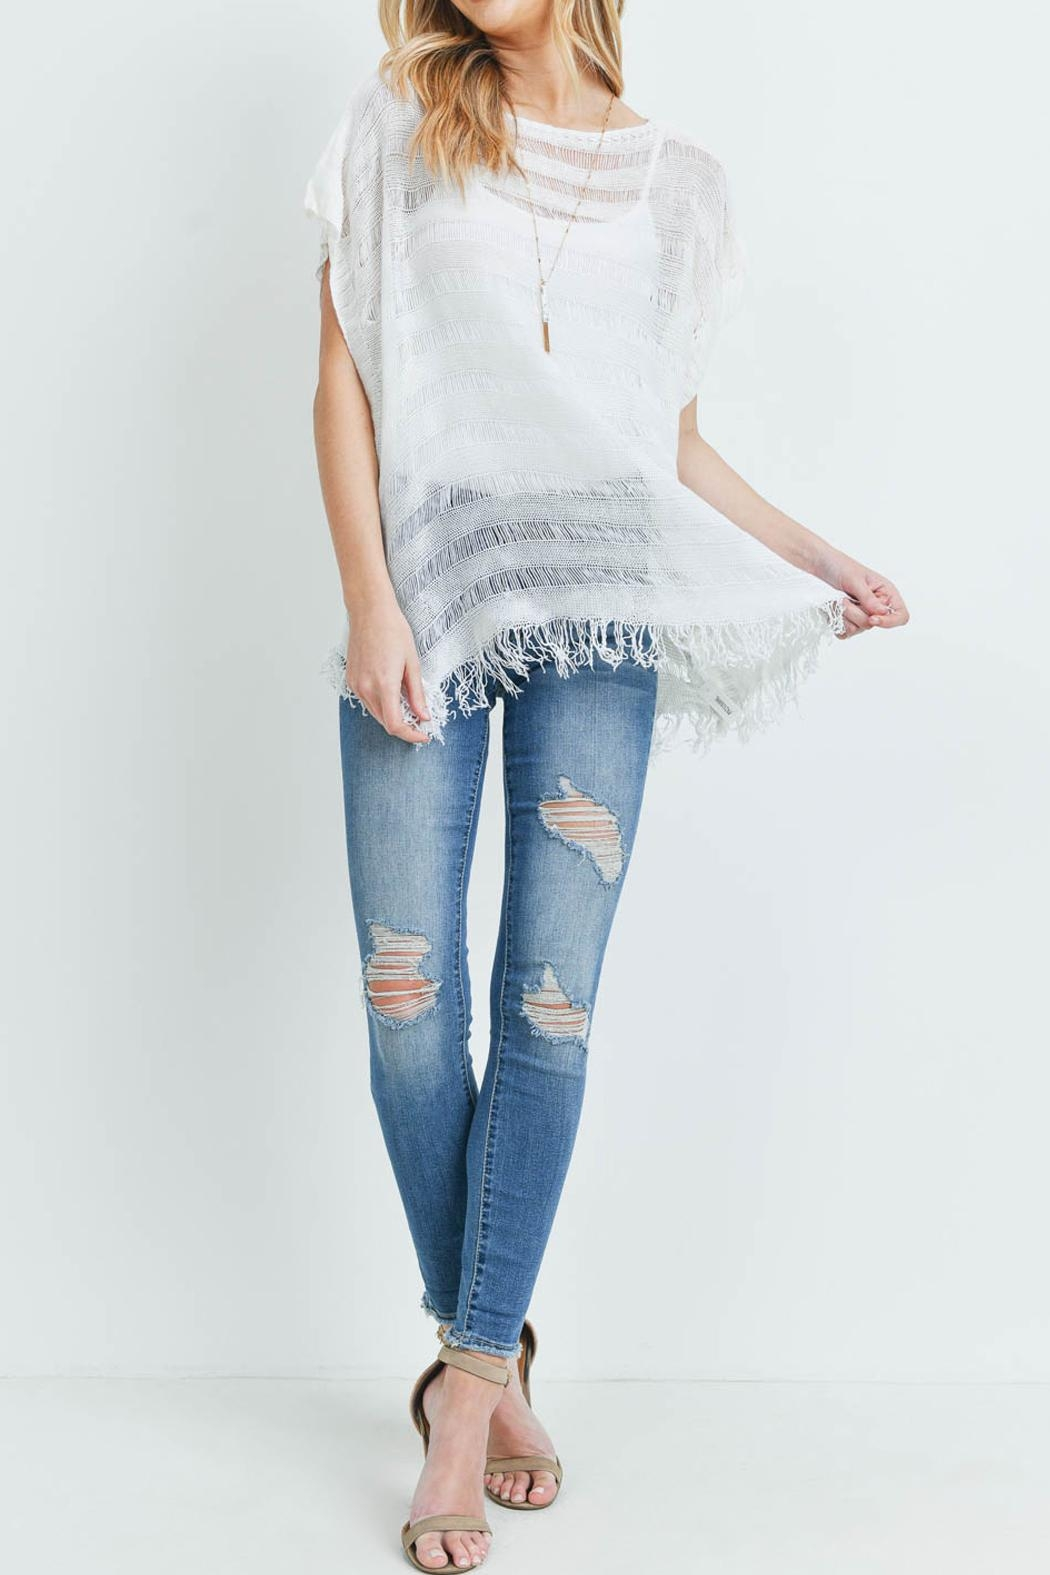 Riah Fashion Short-Sleeves See-Through-Knitted-Tassel Top - Back Cropped Image